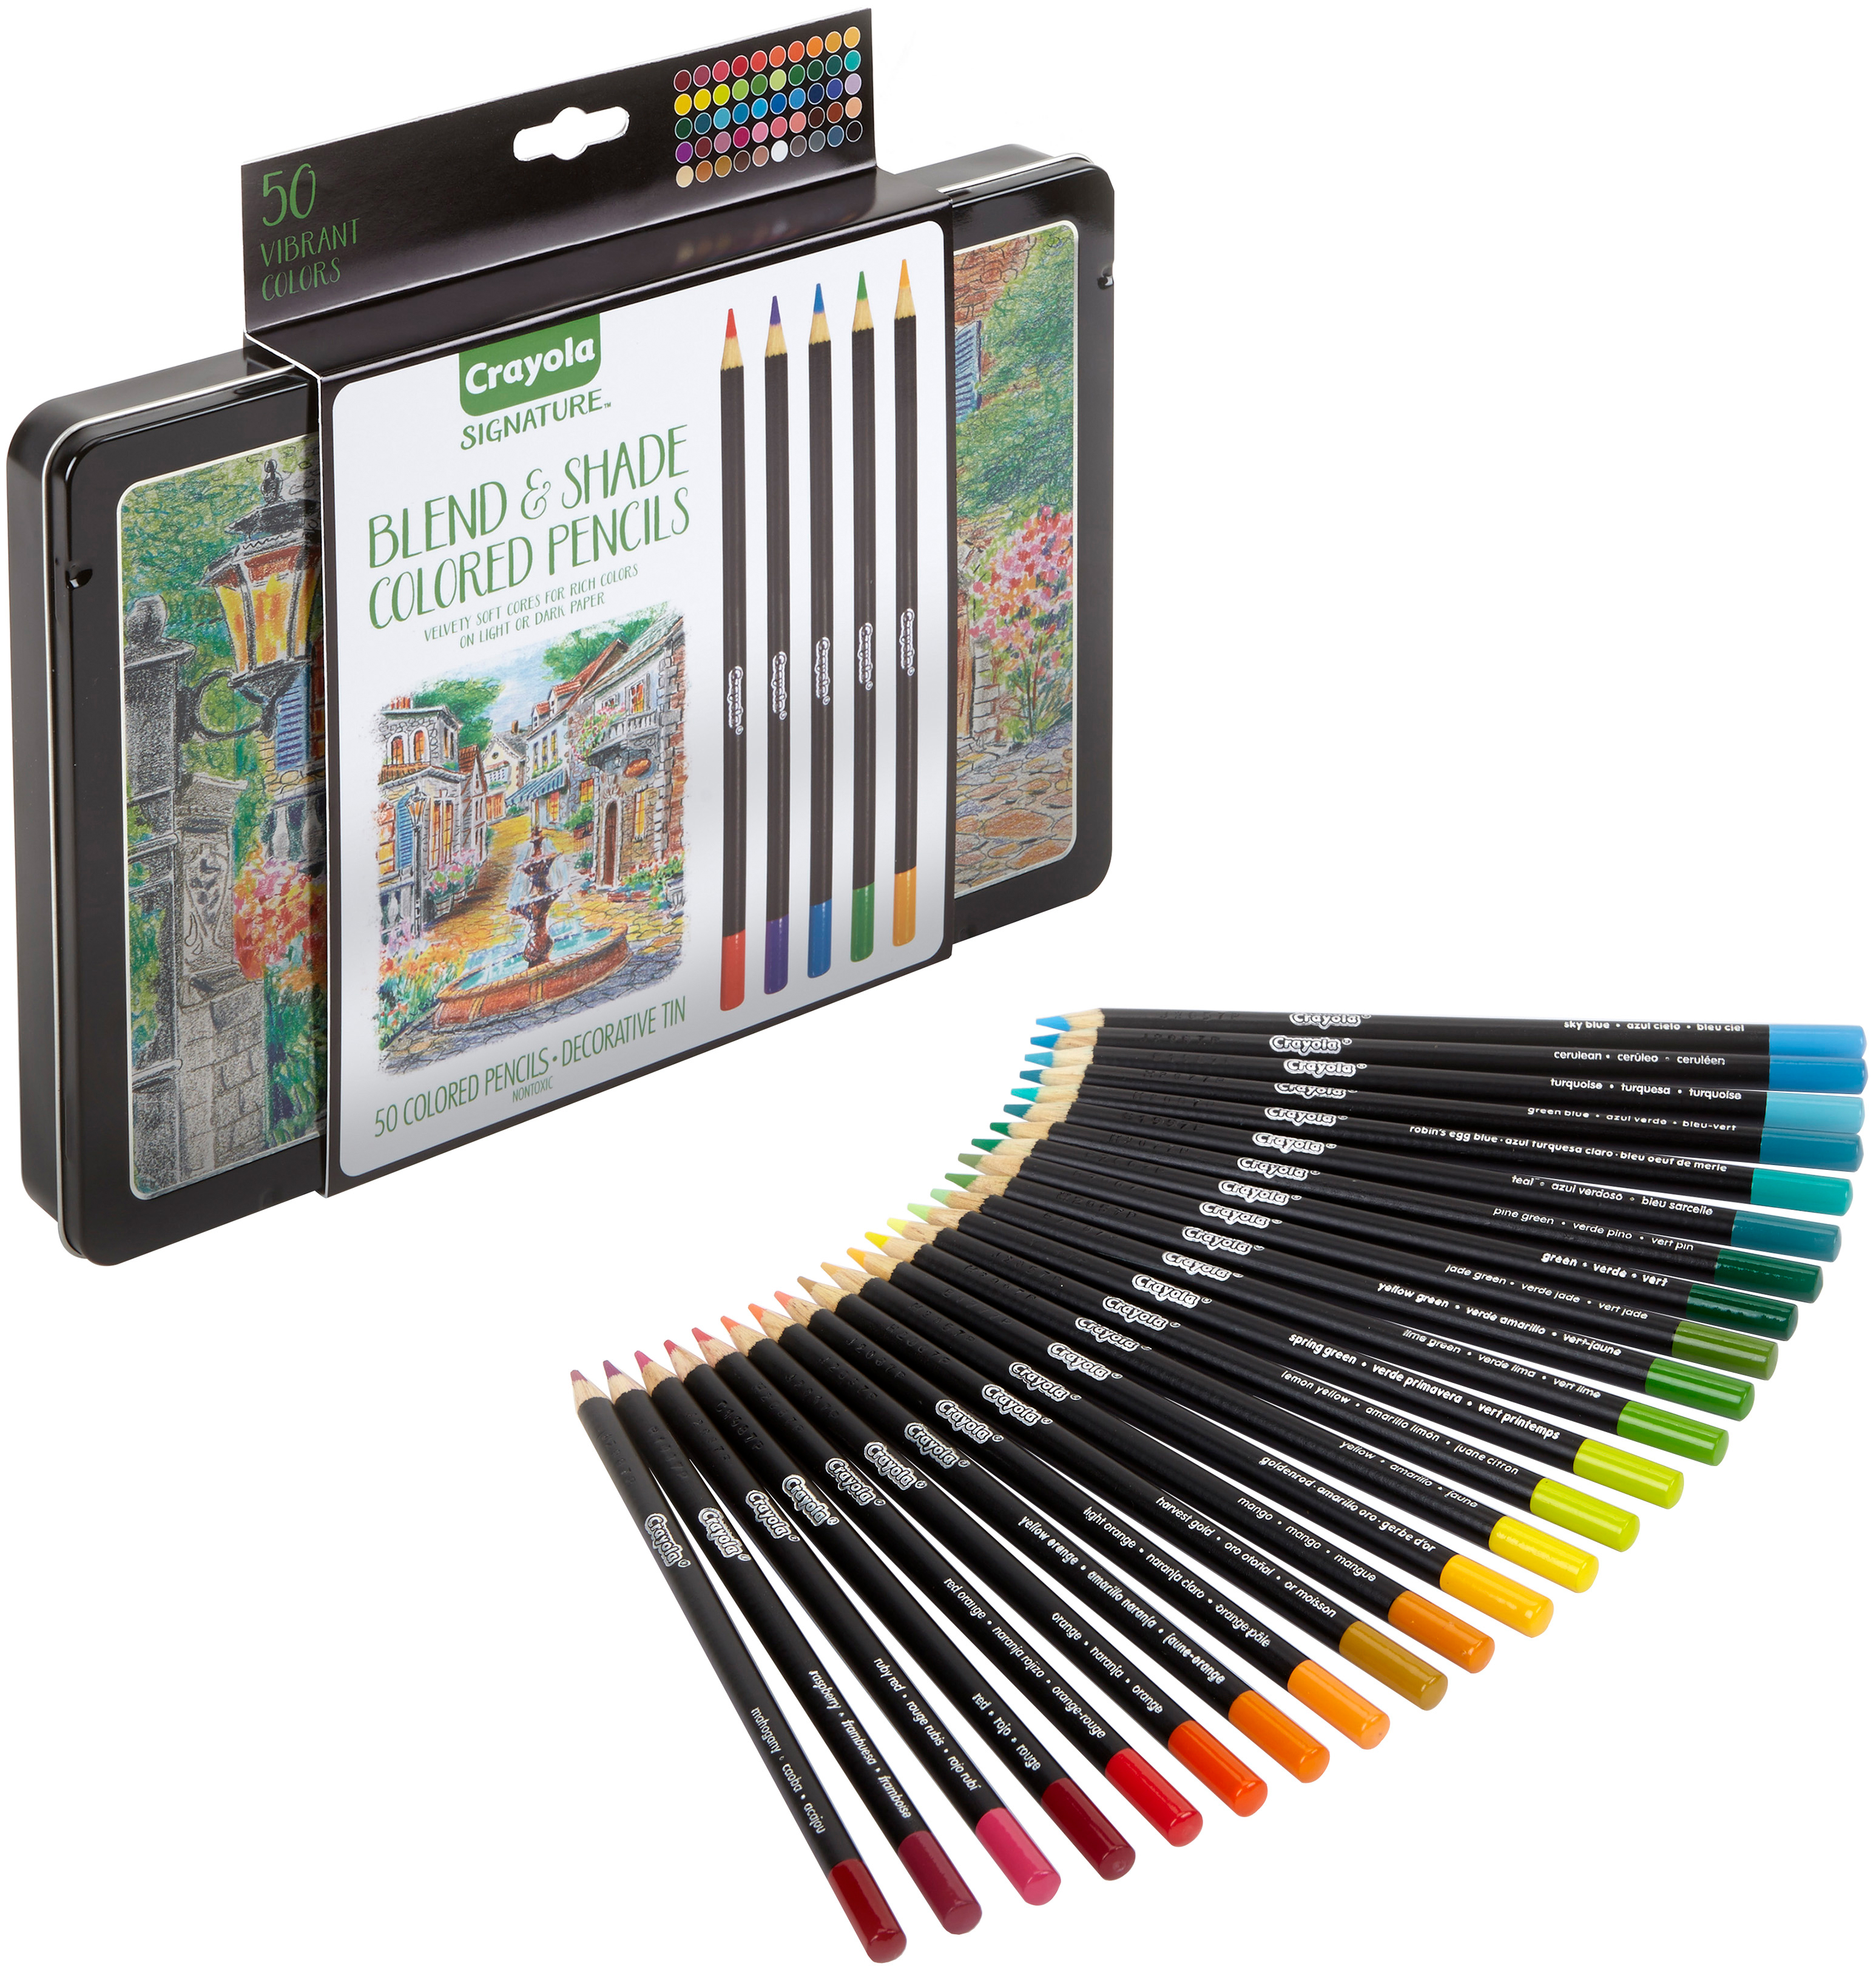 Crayola 50 Piece Signature Blend & Shade Colored Pencils With Tin in Assorted Colors